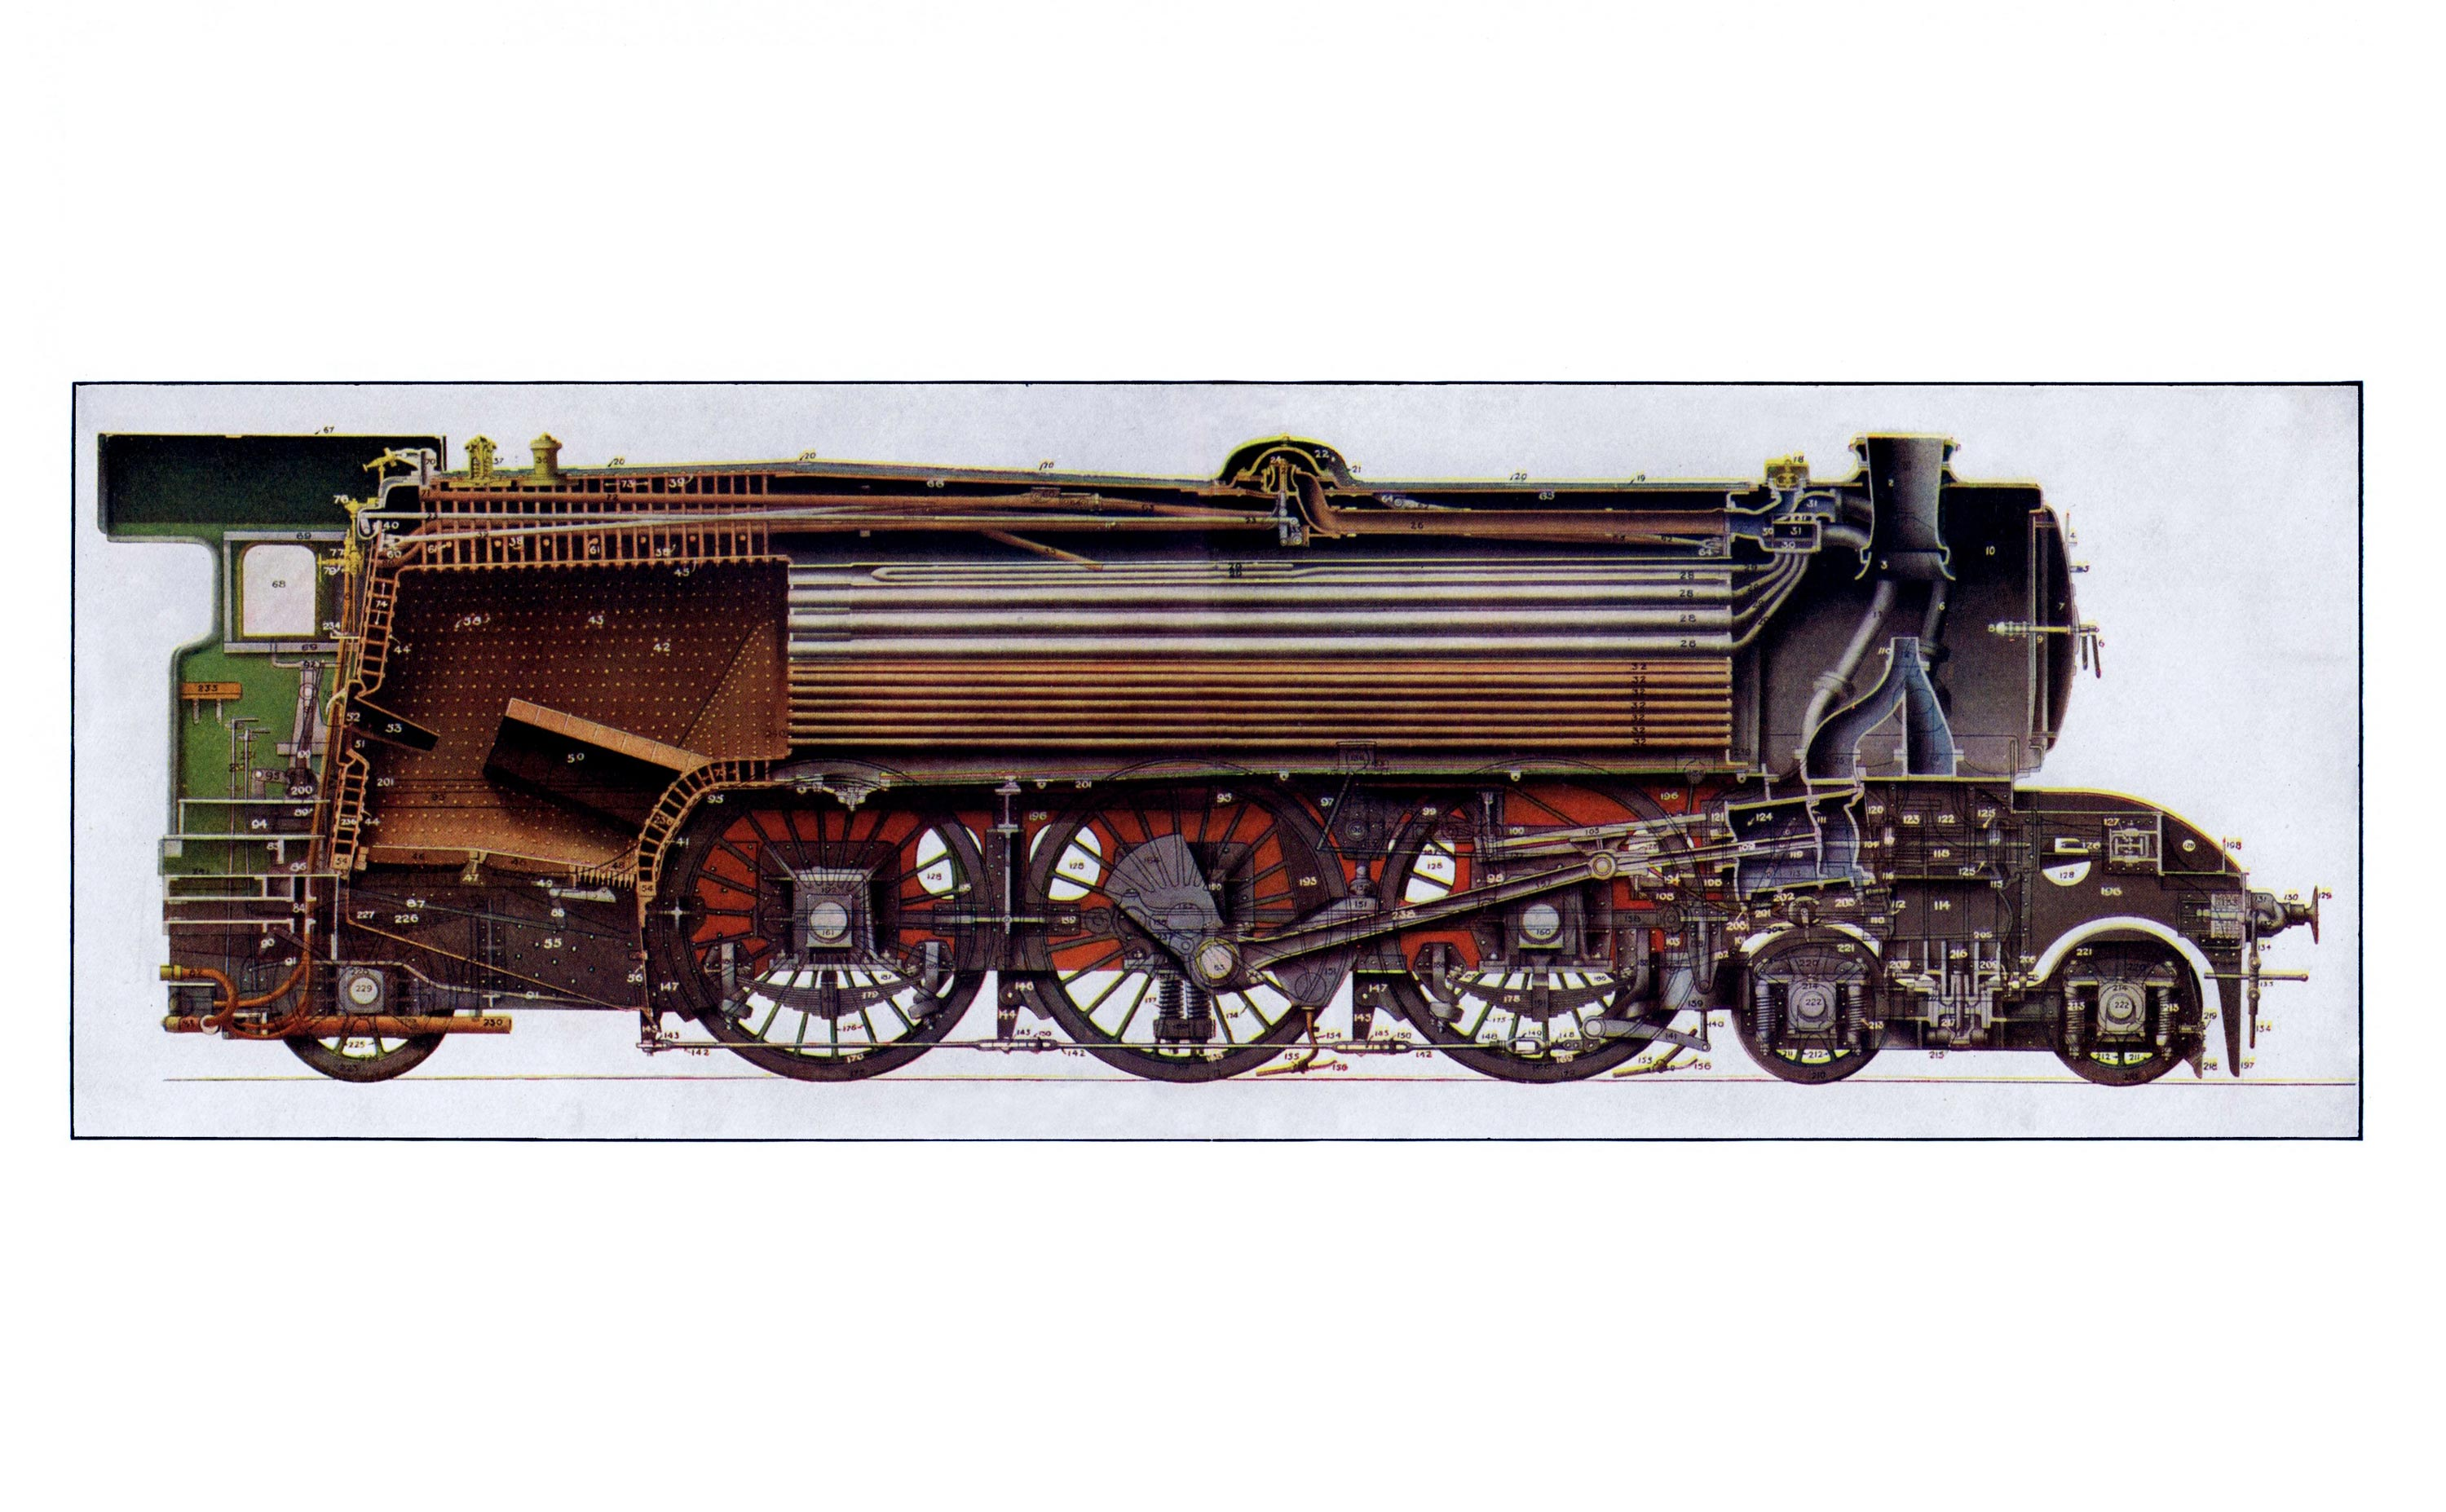 LNER Gresley Classes A1 and A3 locomotive cutaway